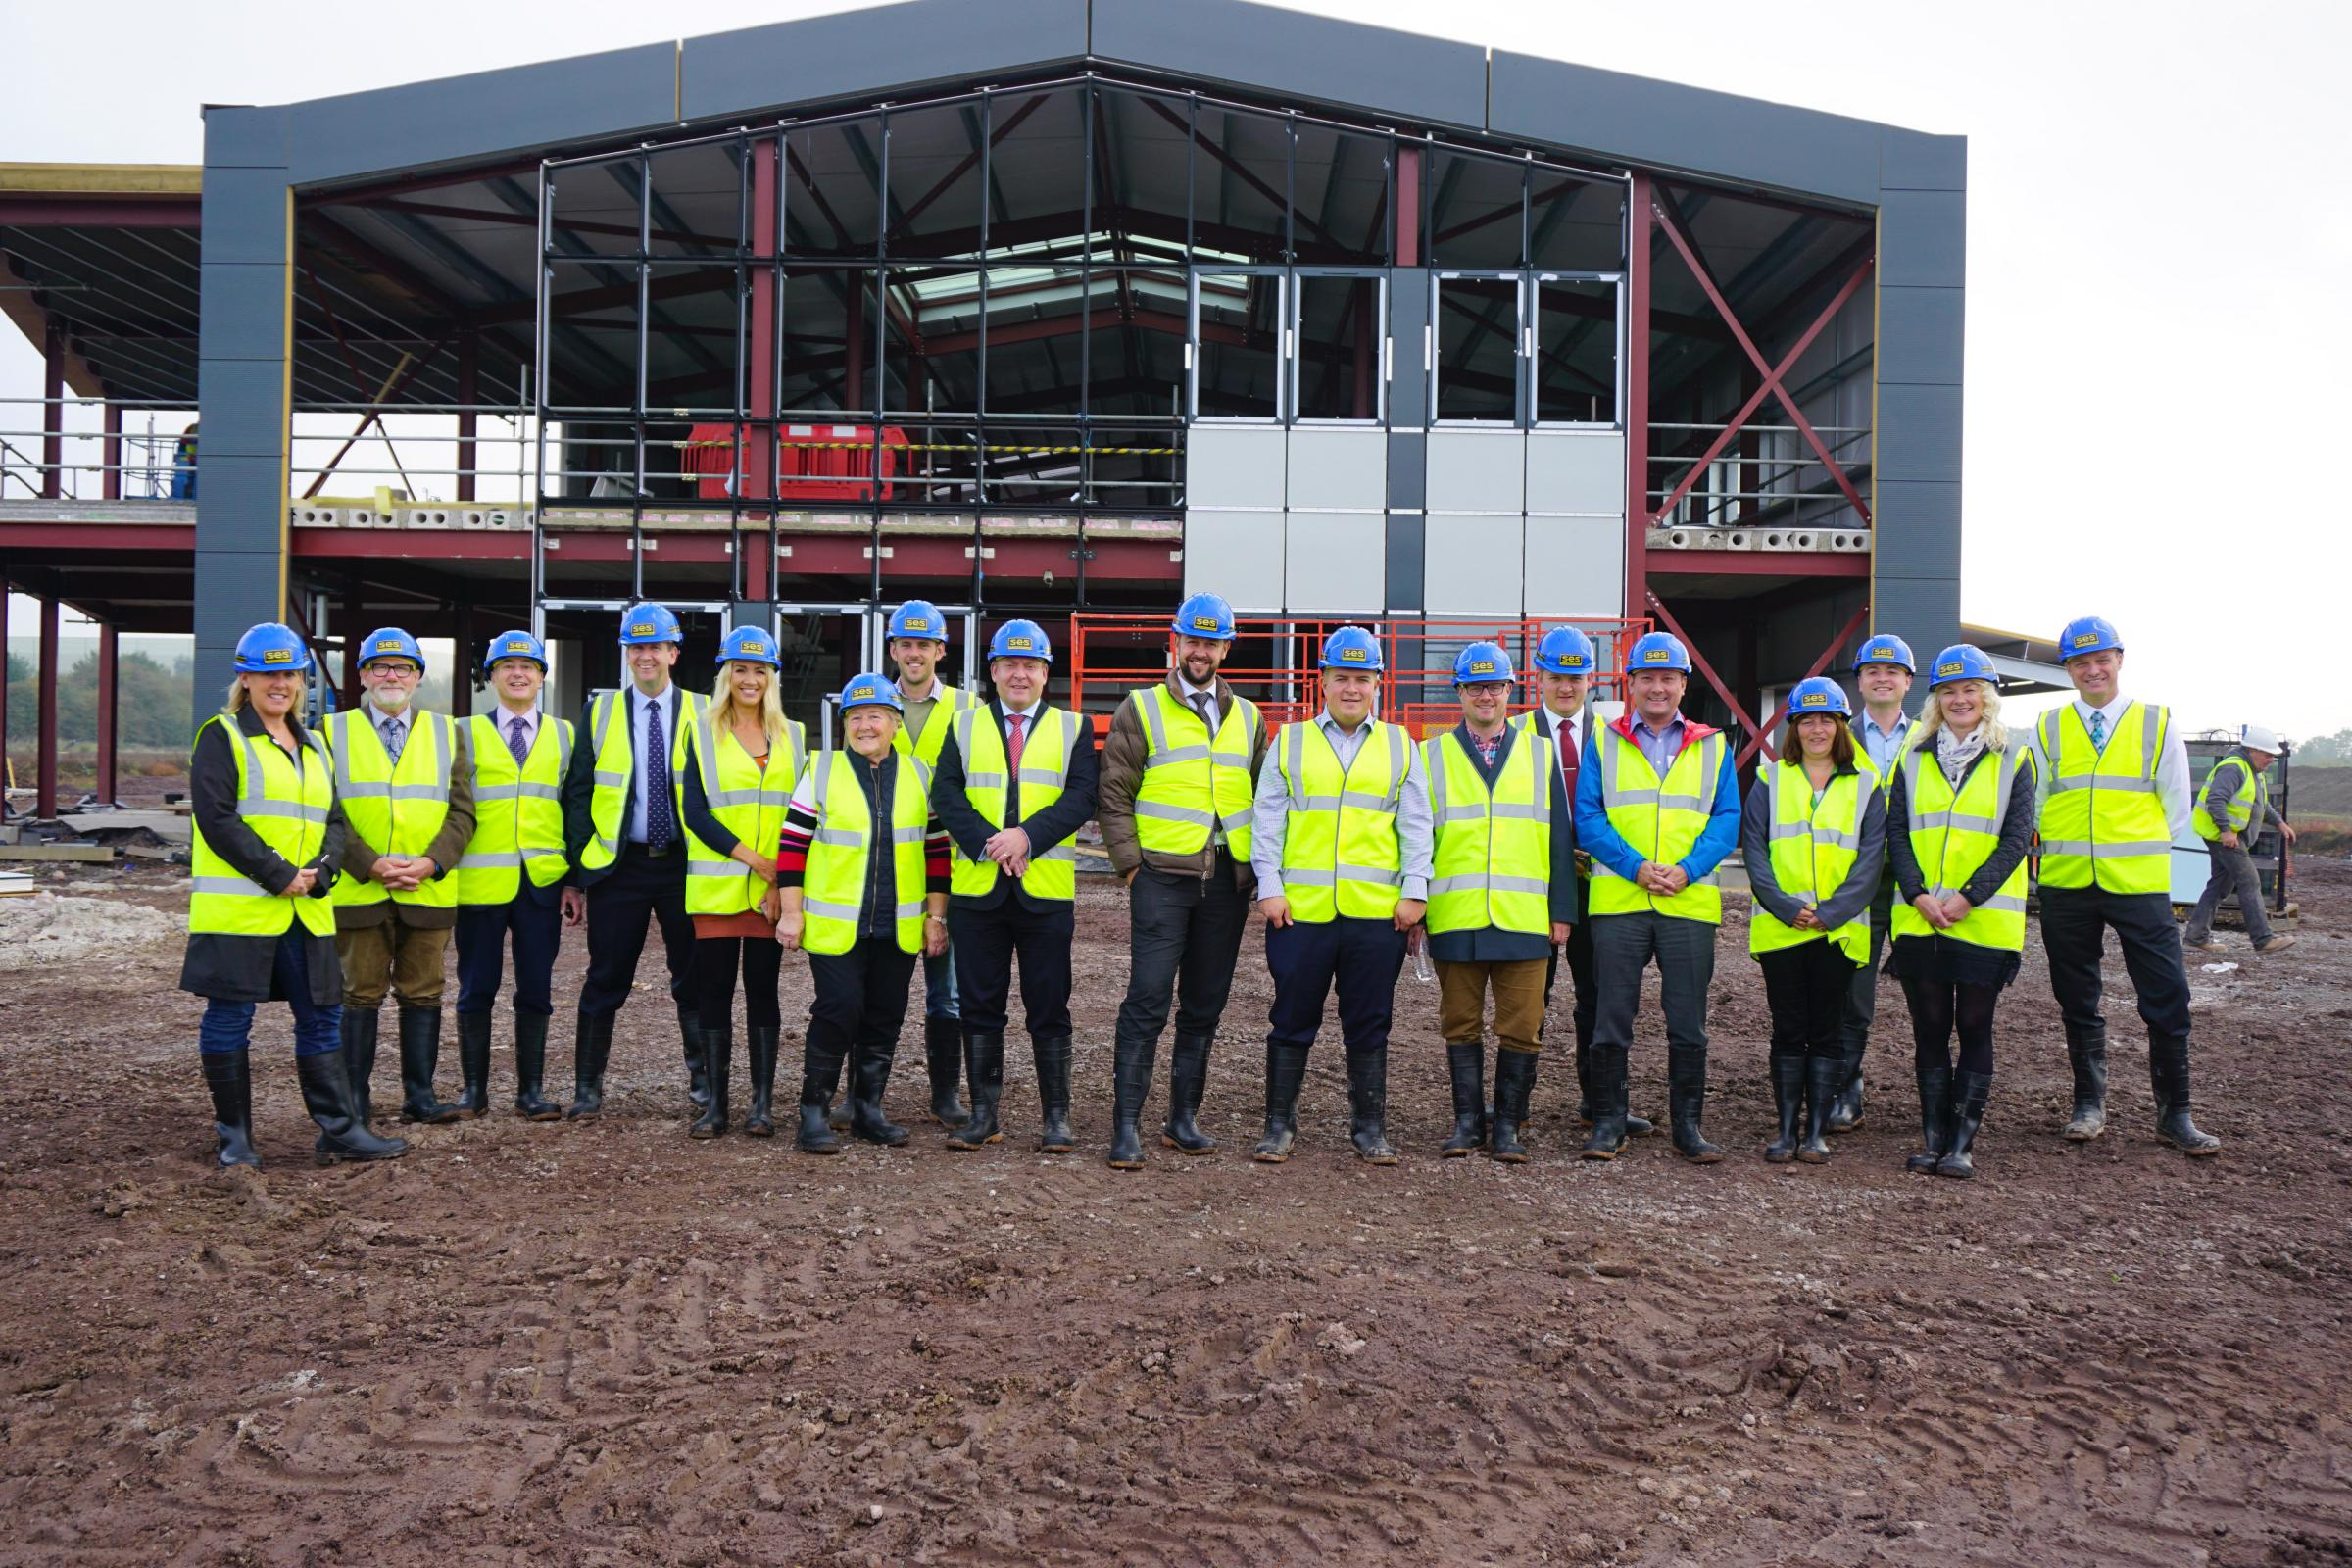 Members of Wiltshire Air Ambulance's 100 Club at the charity's new airbase under construction at Outmarsh Farm, Semington